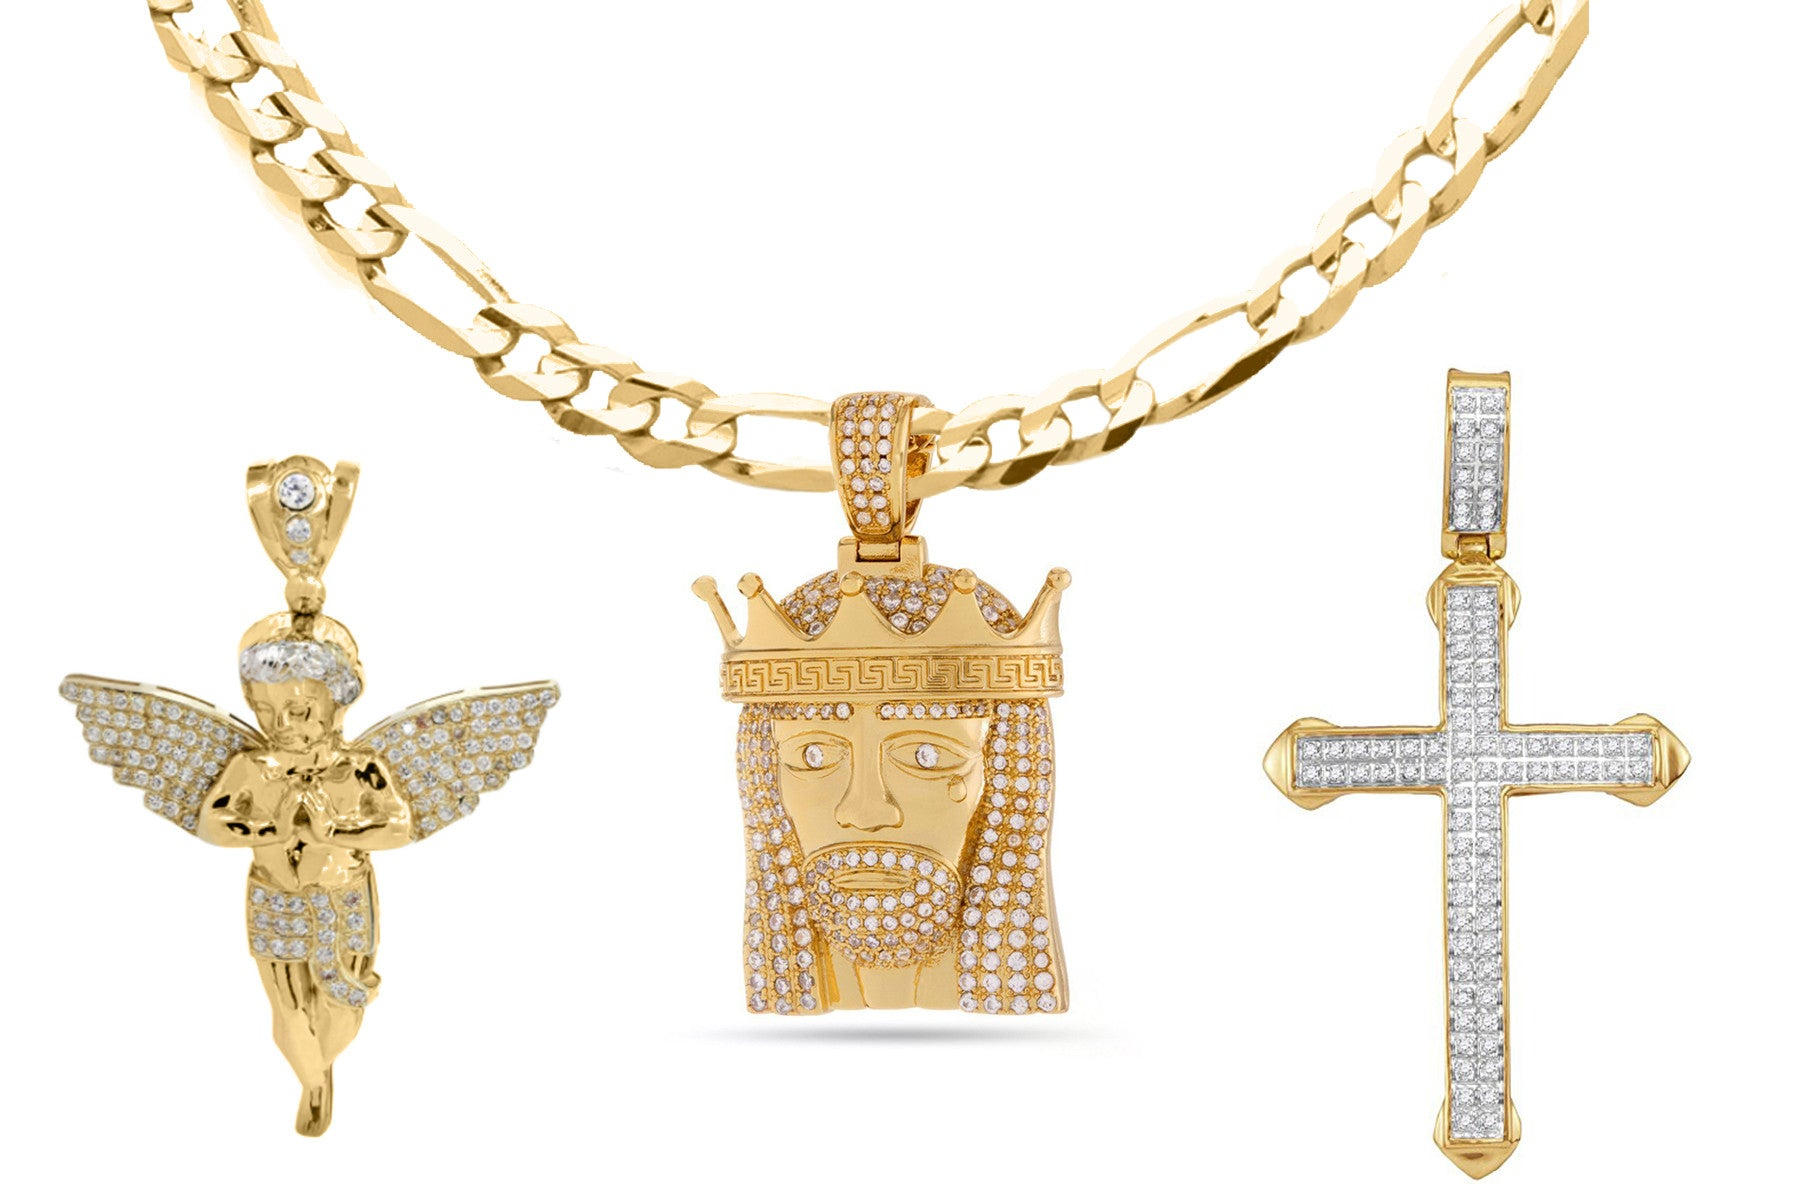 18K Gold Plated Religious Cross Set - Fiagro Necklace + 3 Pendants - CharmToSpare